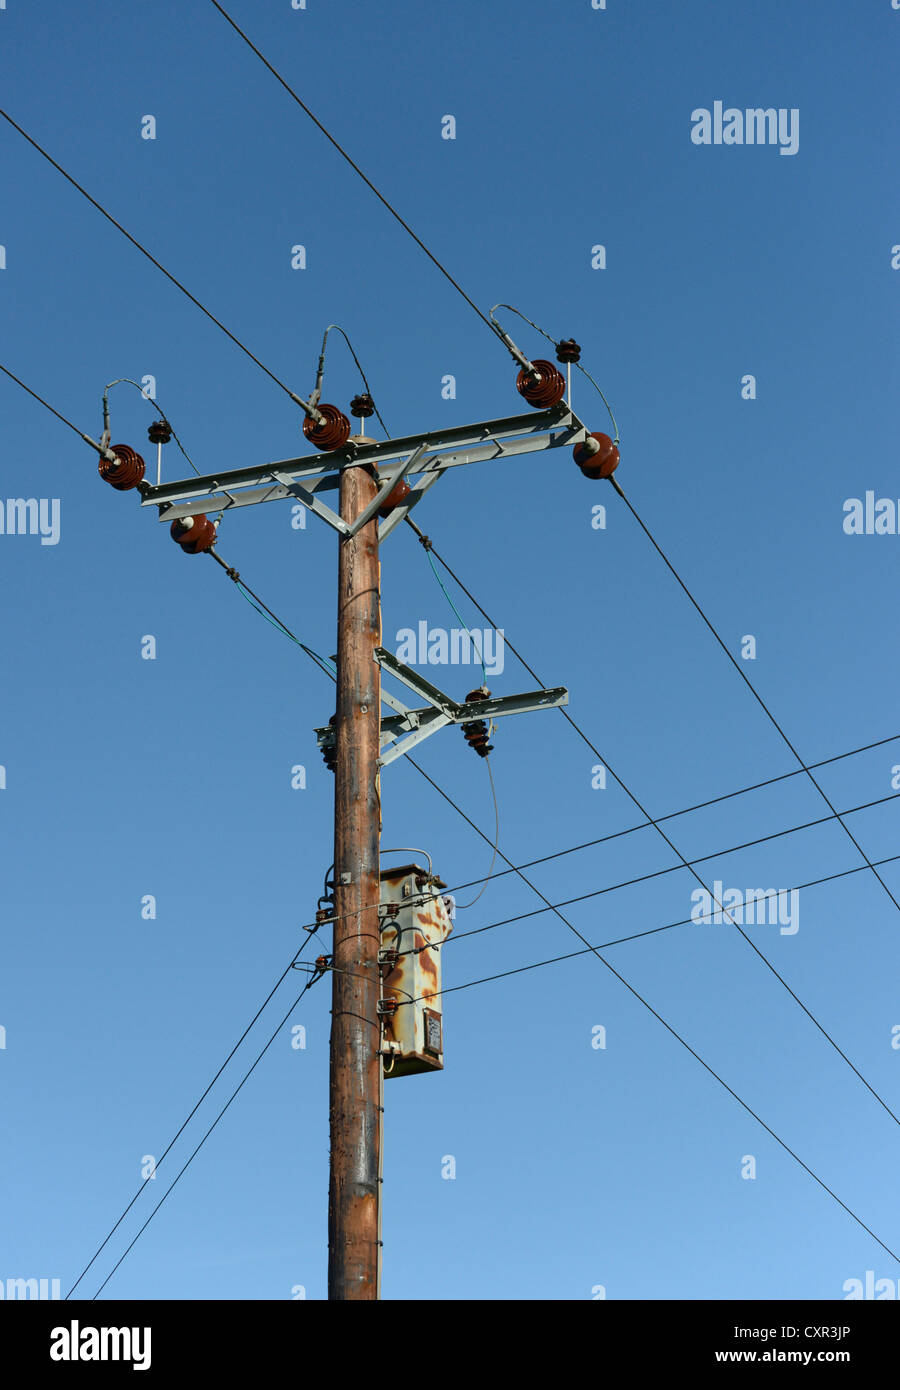 Overhead Power Line : Kv overhead electrical power lines and transformer on